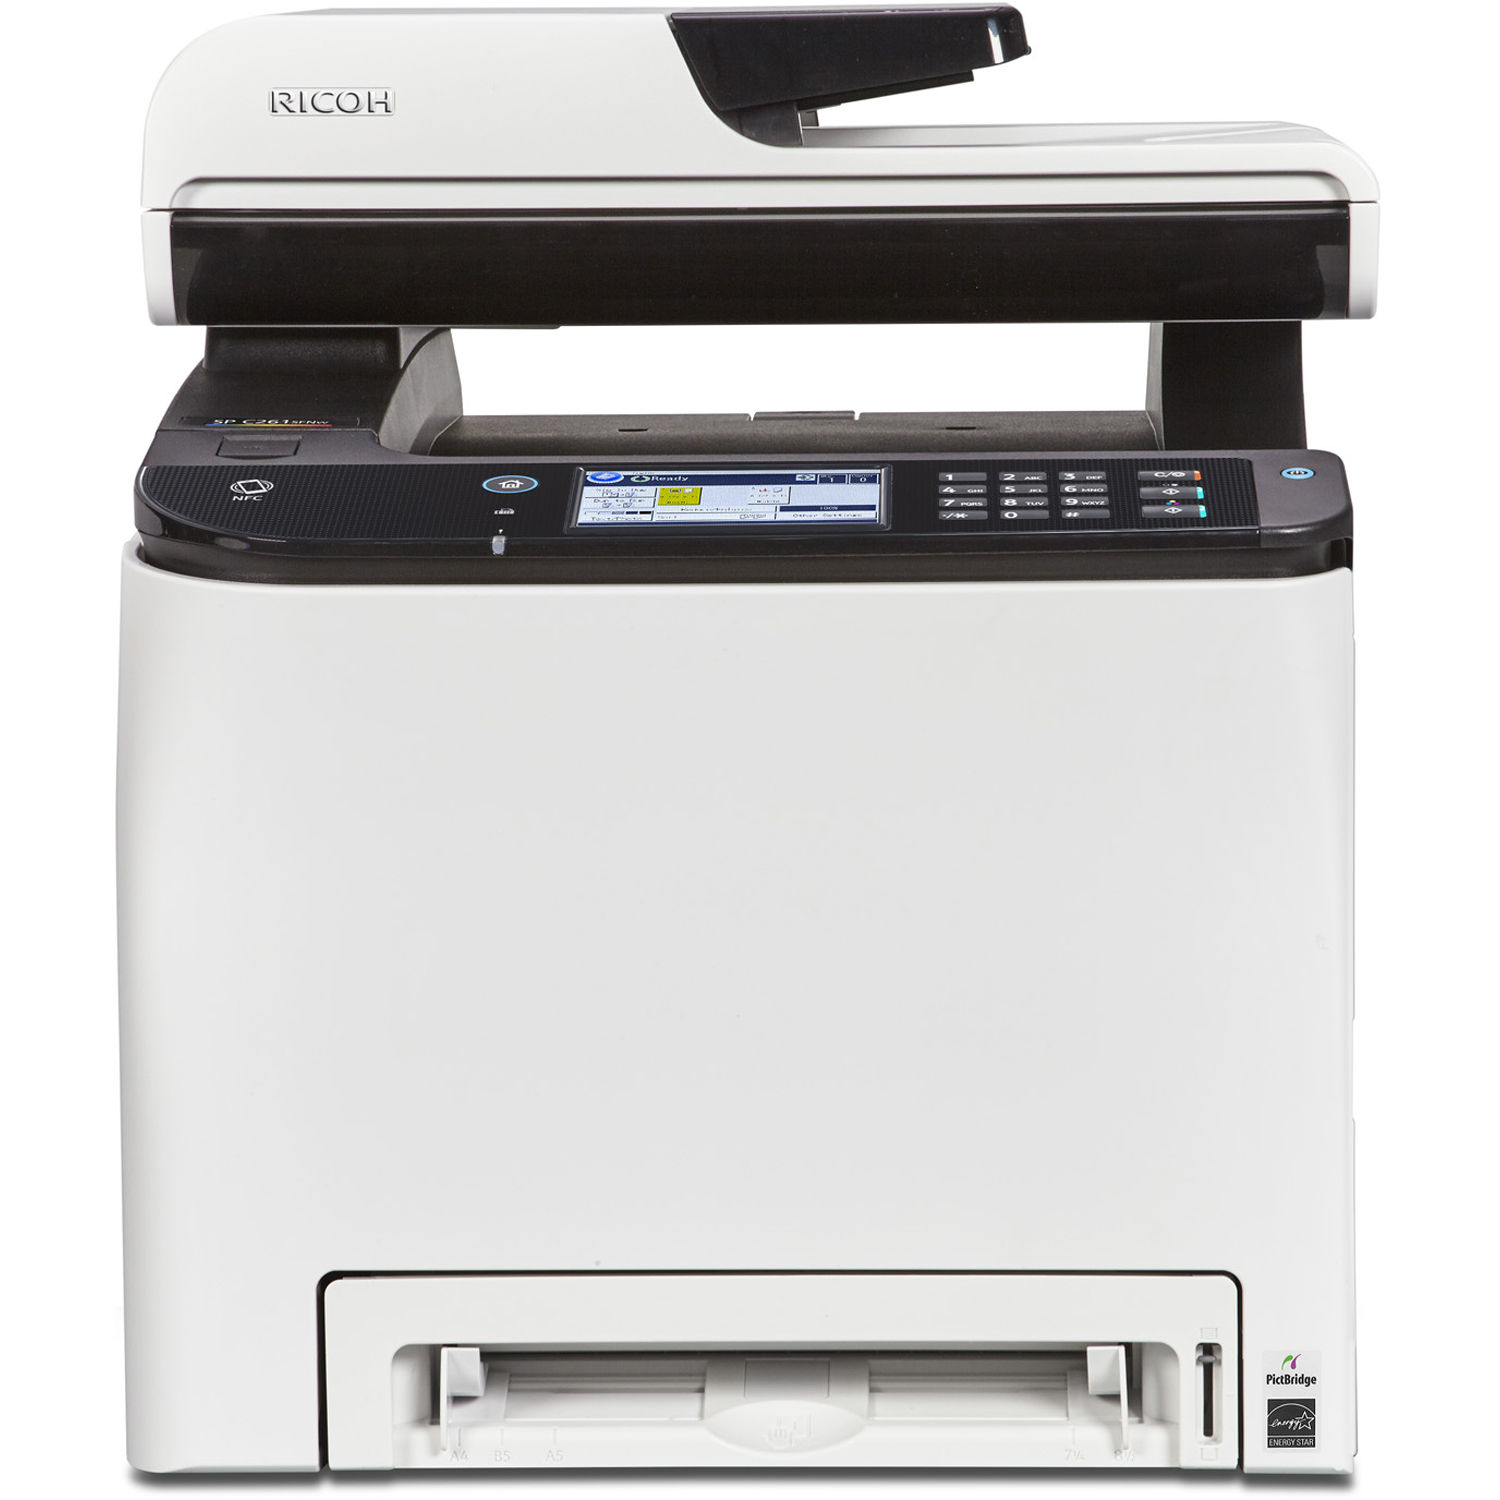 Ricoh SP C261SFNw All-in-One Color Laser Printer